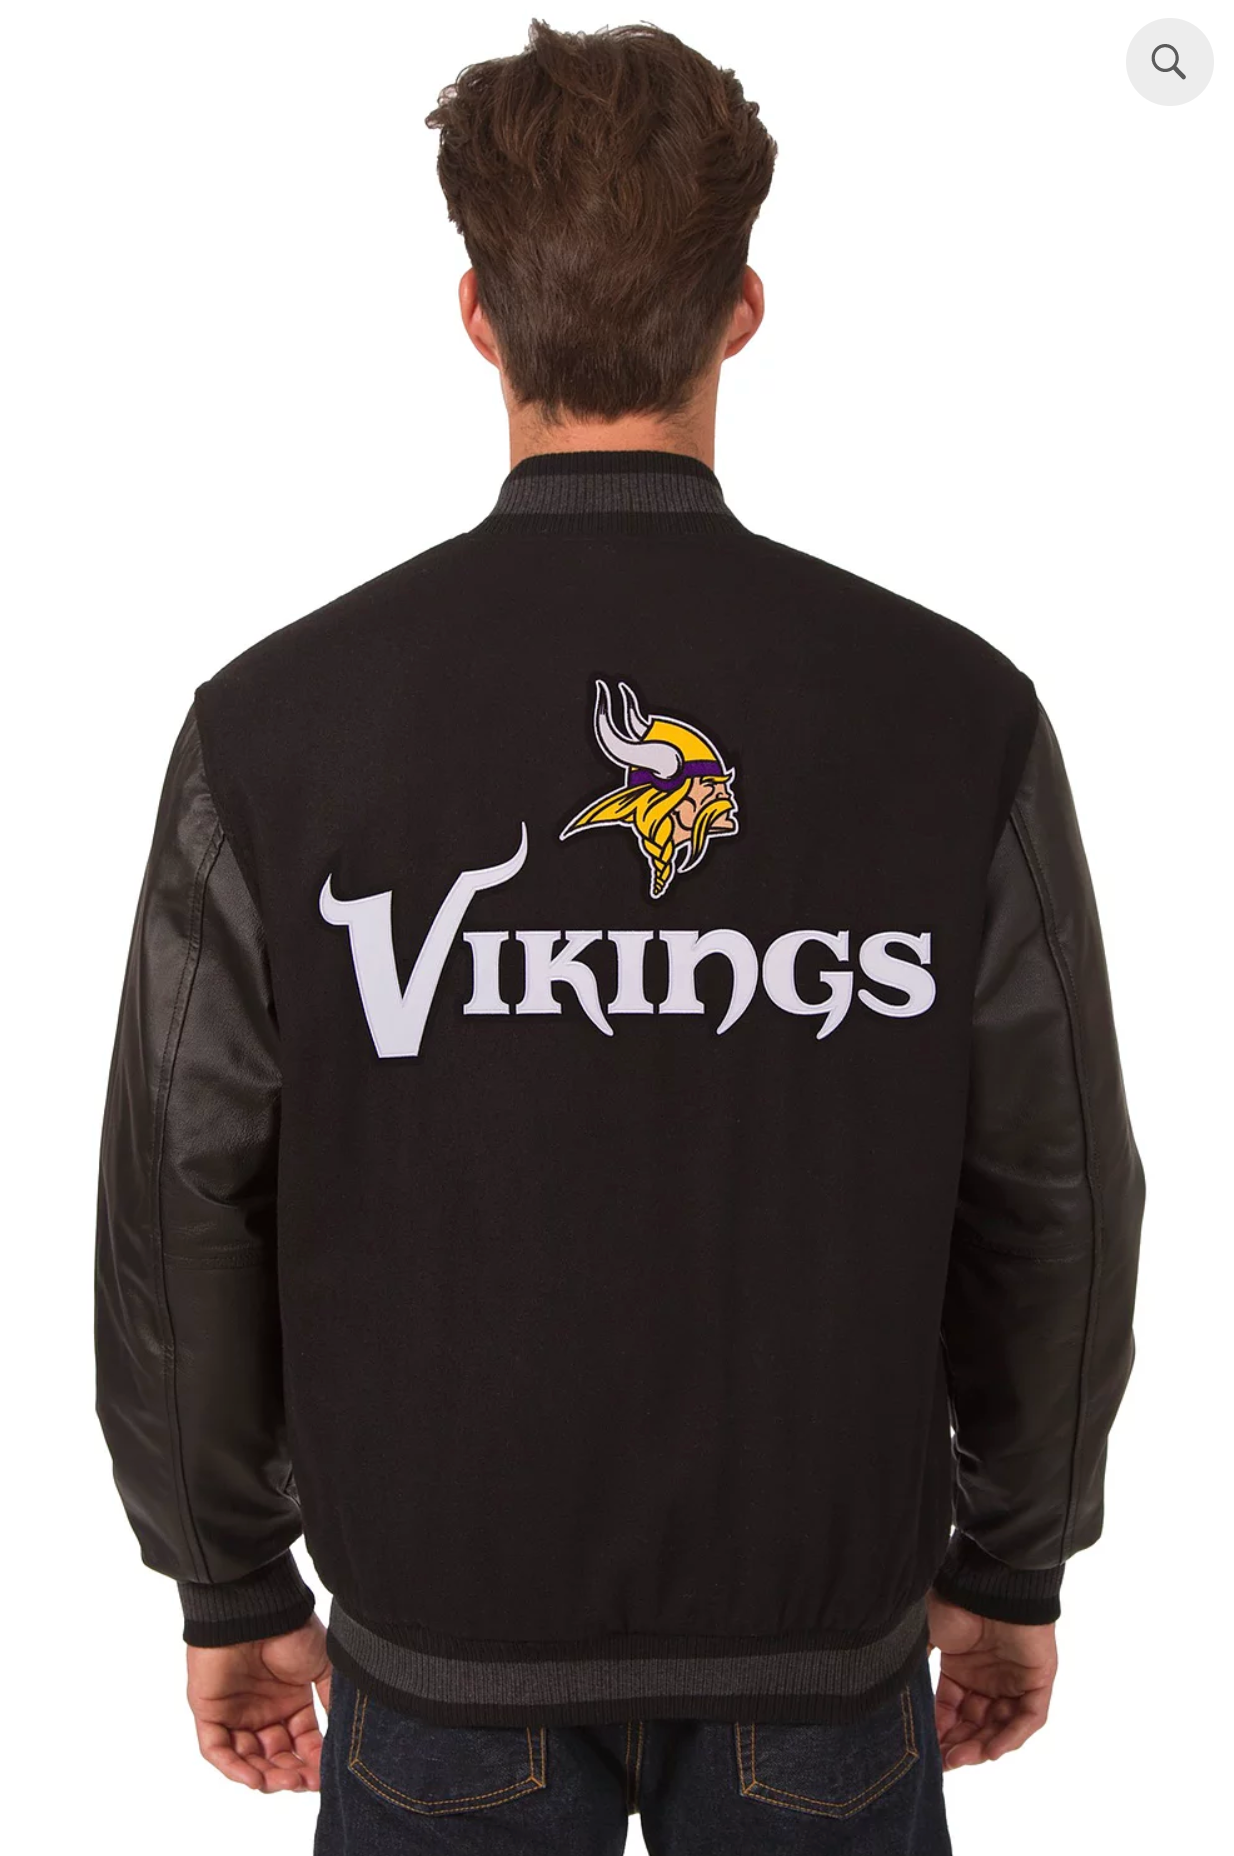 Minnesota Vikings Reversible Wool and Leather Varsity Jacket with Back Logo